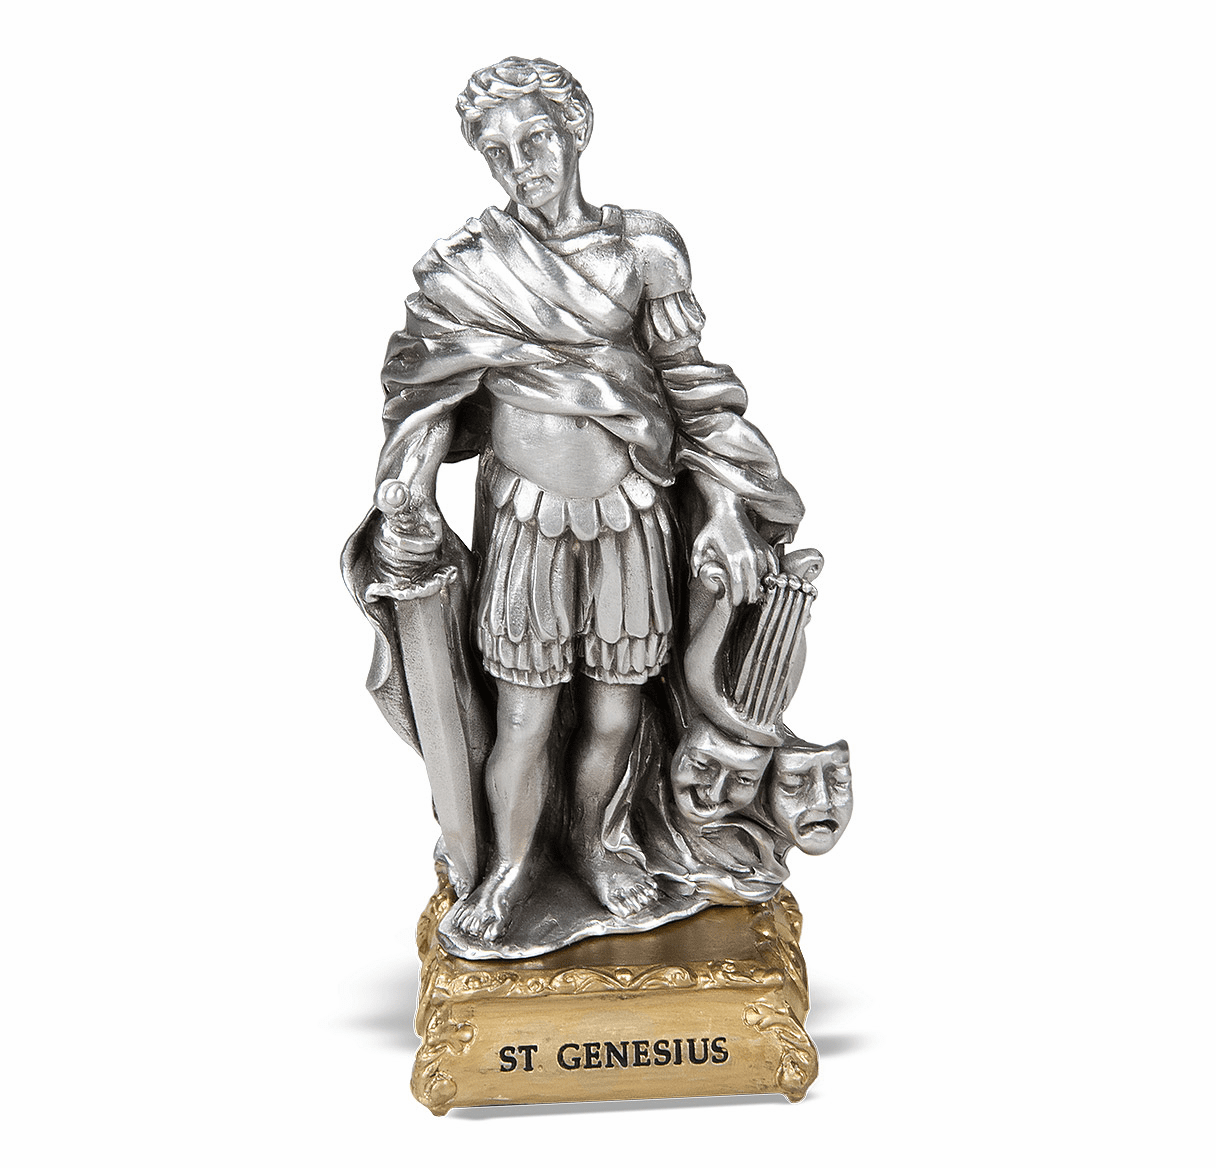 St Genesius Pewter Statue on Gold Tone Base by Hirten